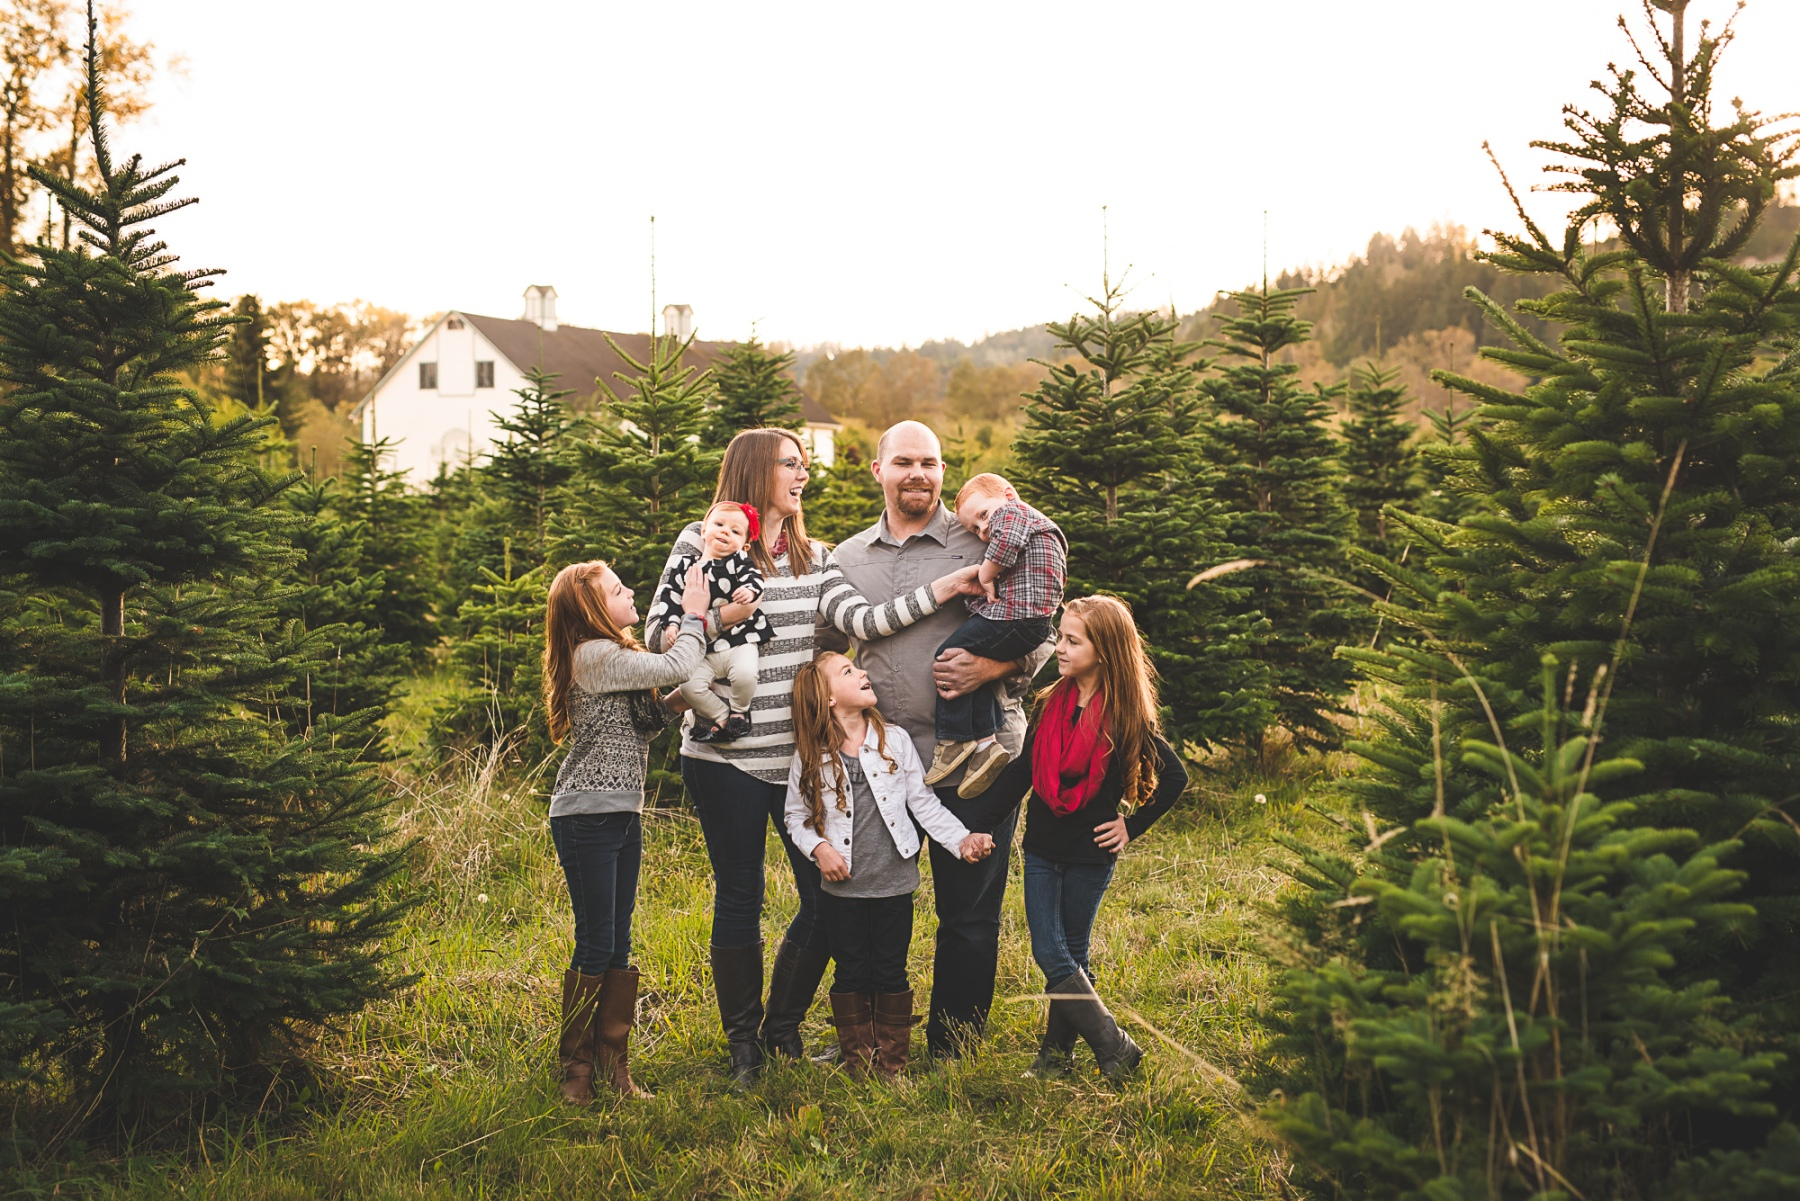 A Seattle Family Photo at a Christmas Tree Farm